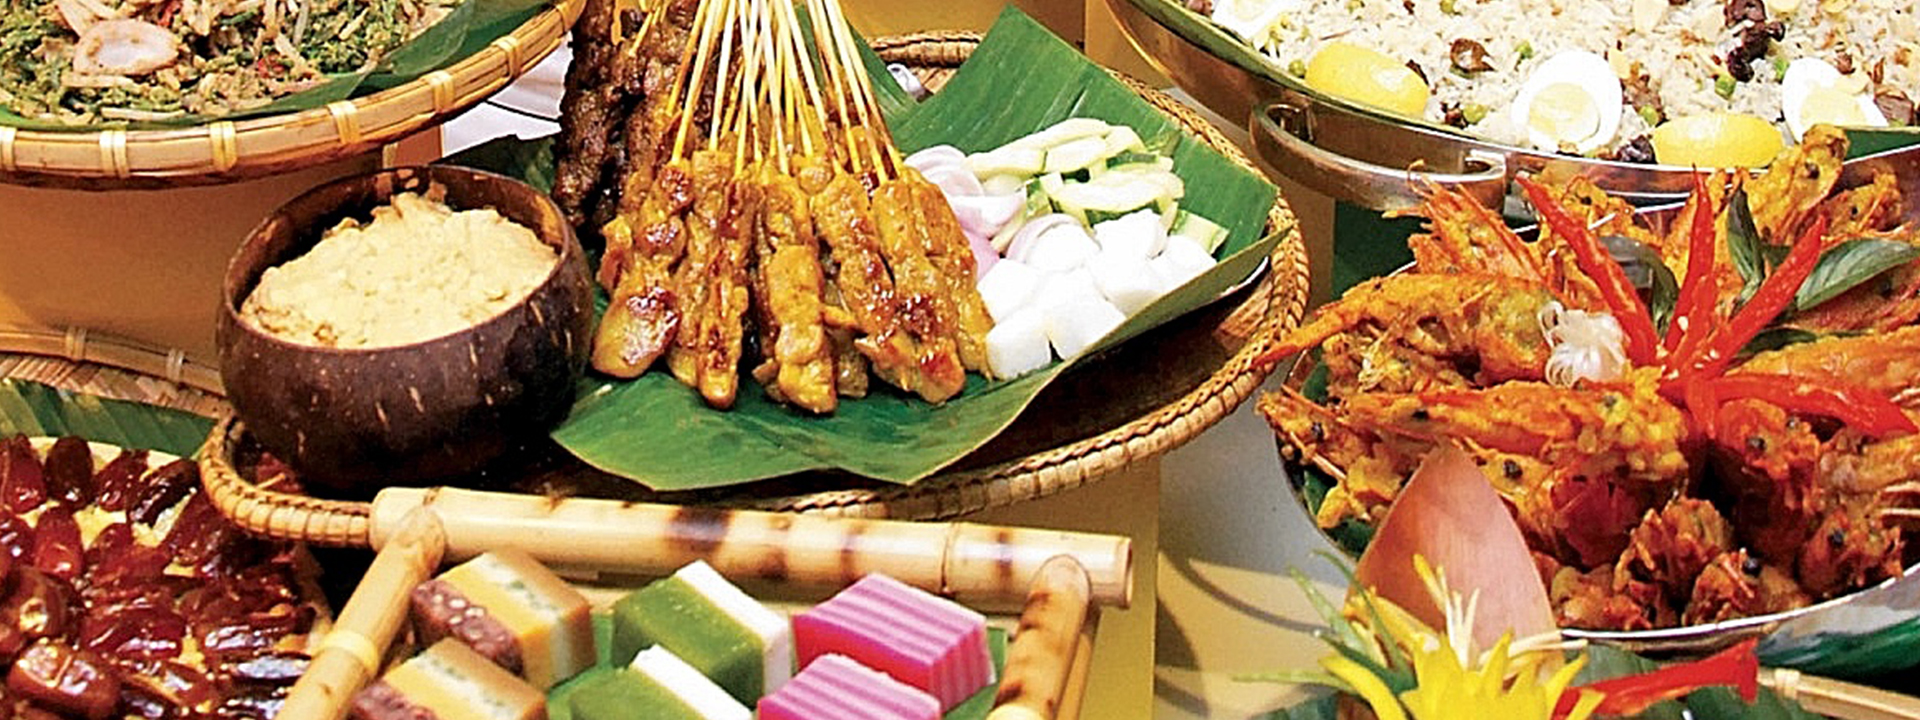 Top 10 malay restaurants in kl selangor for Authentic malaysian cuisine